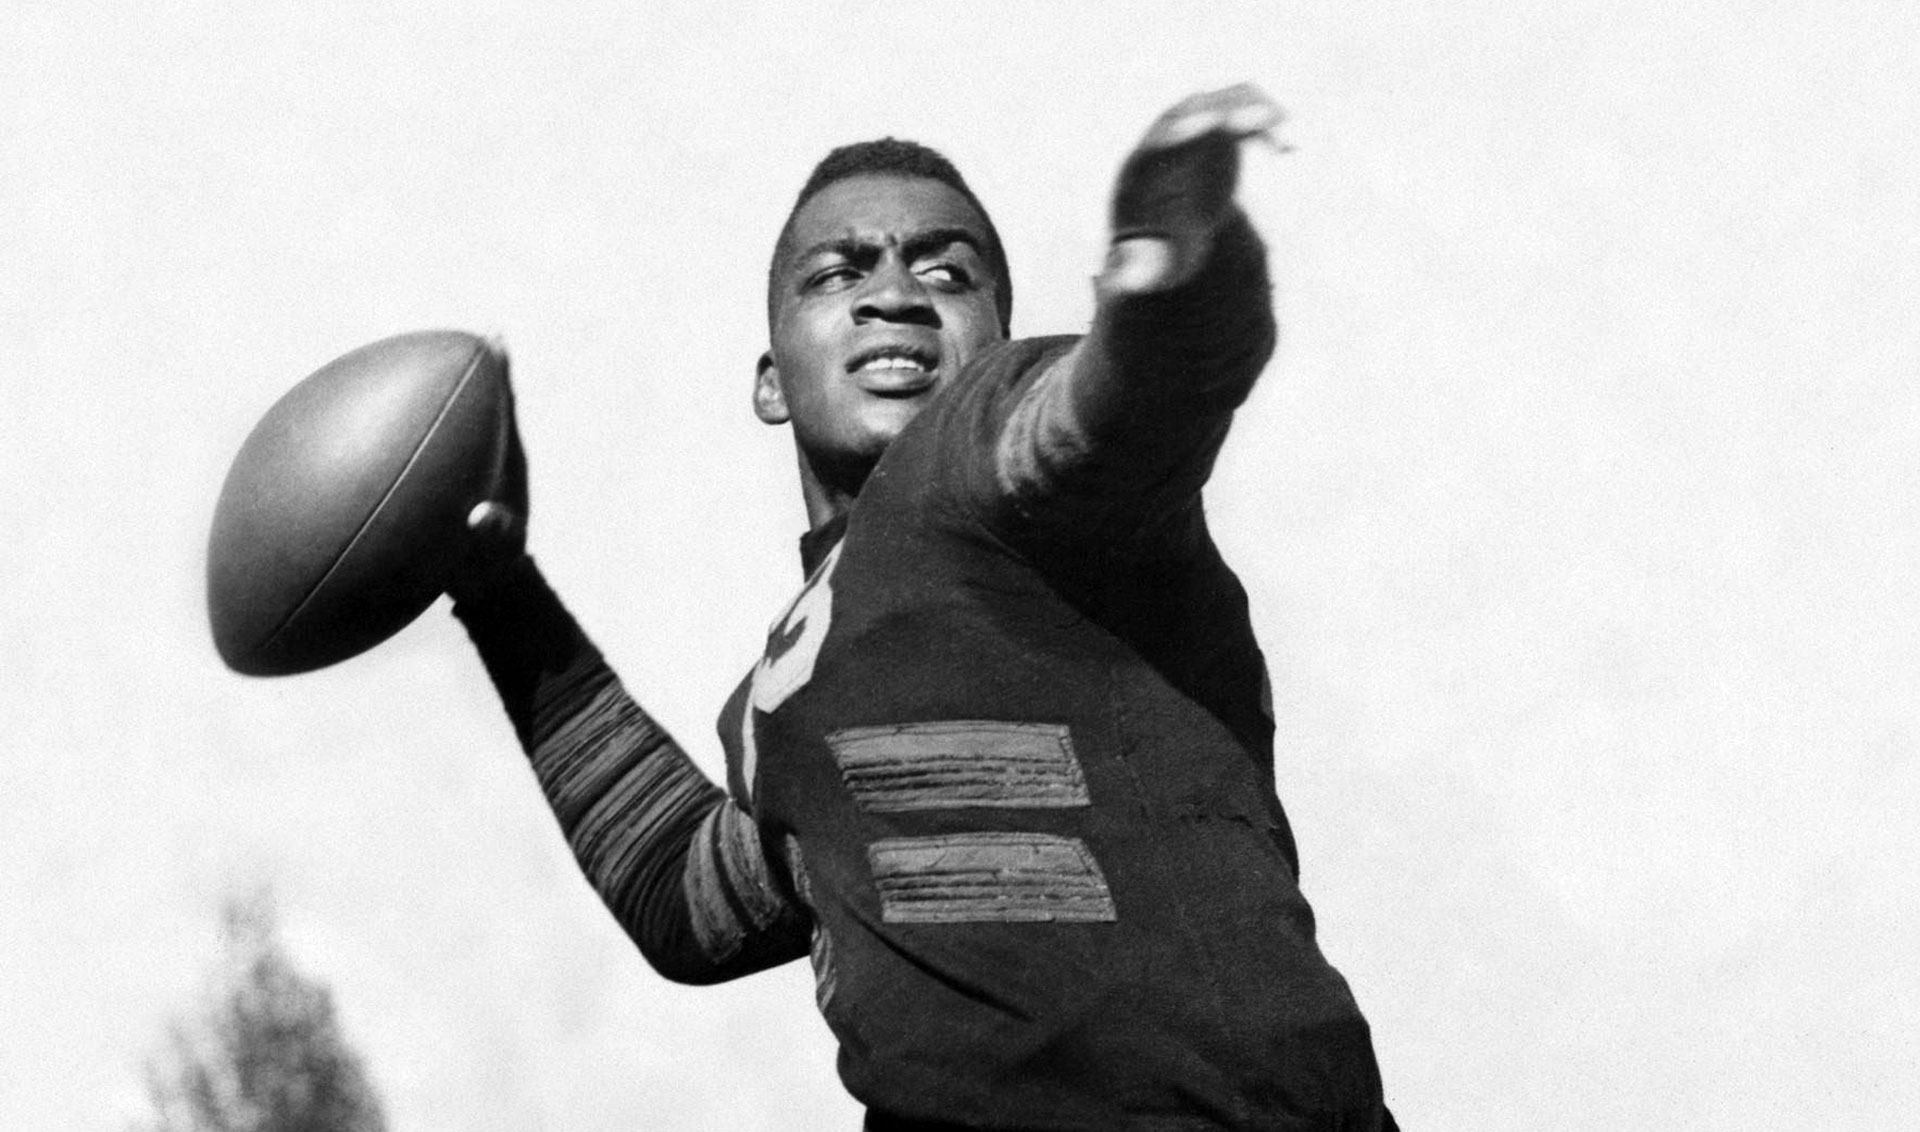 Kenny Washington was one of the first two African-American players to be signed on to the modern NFL.